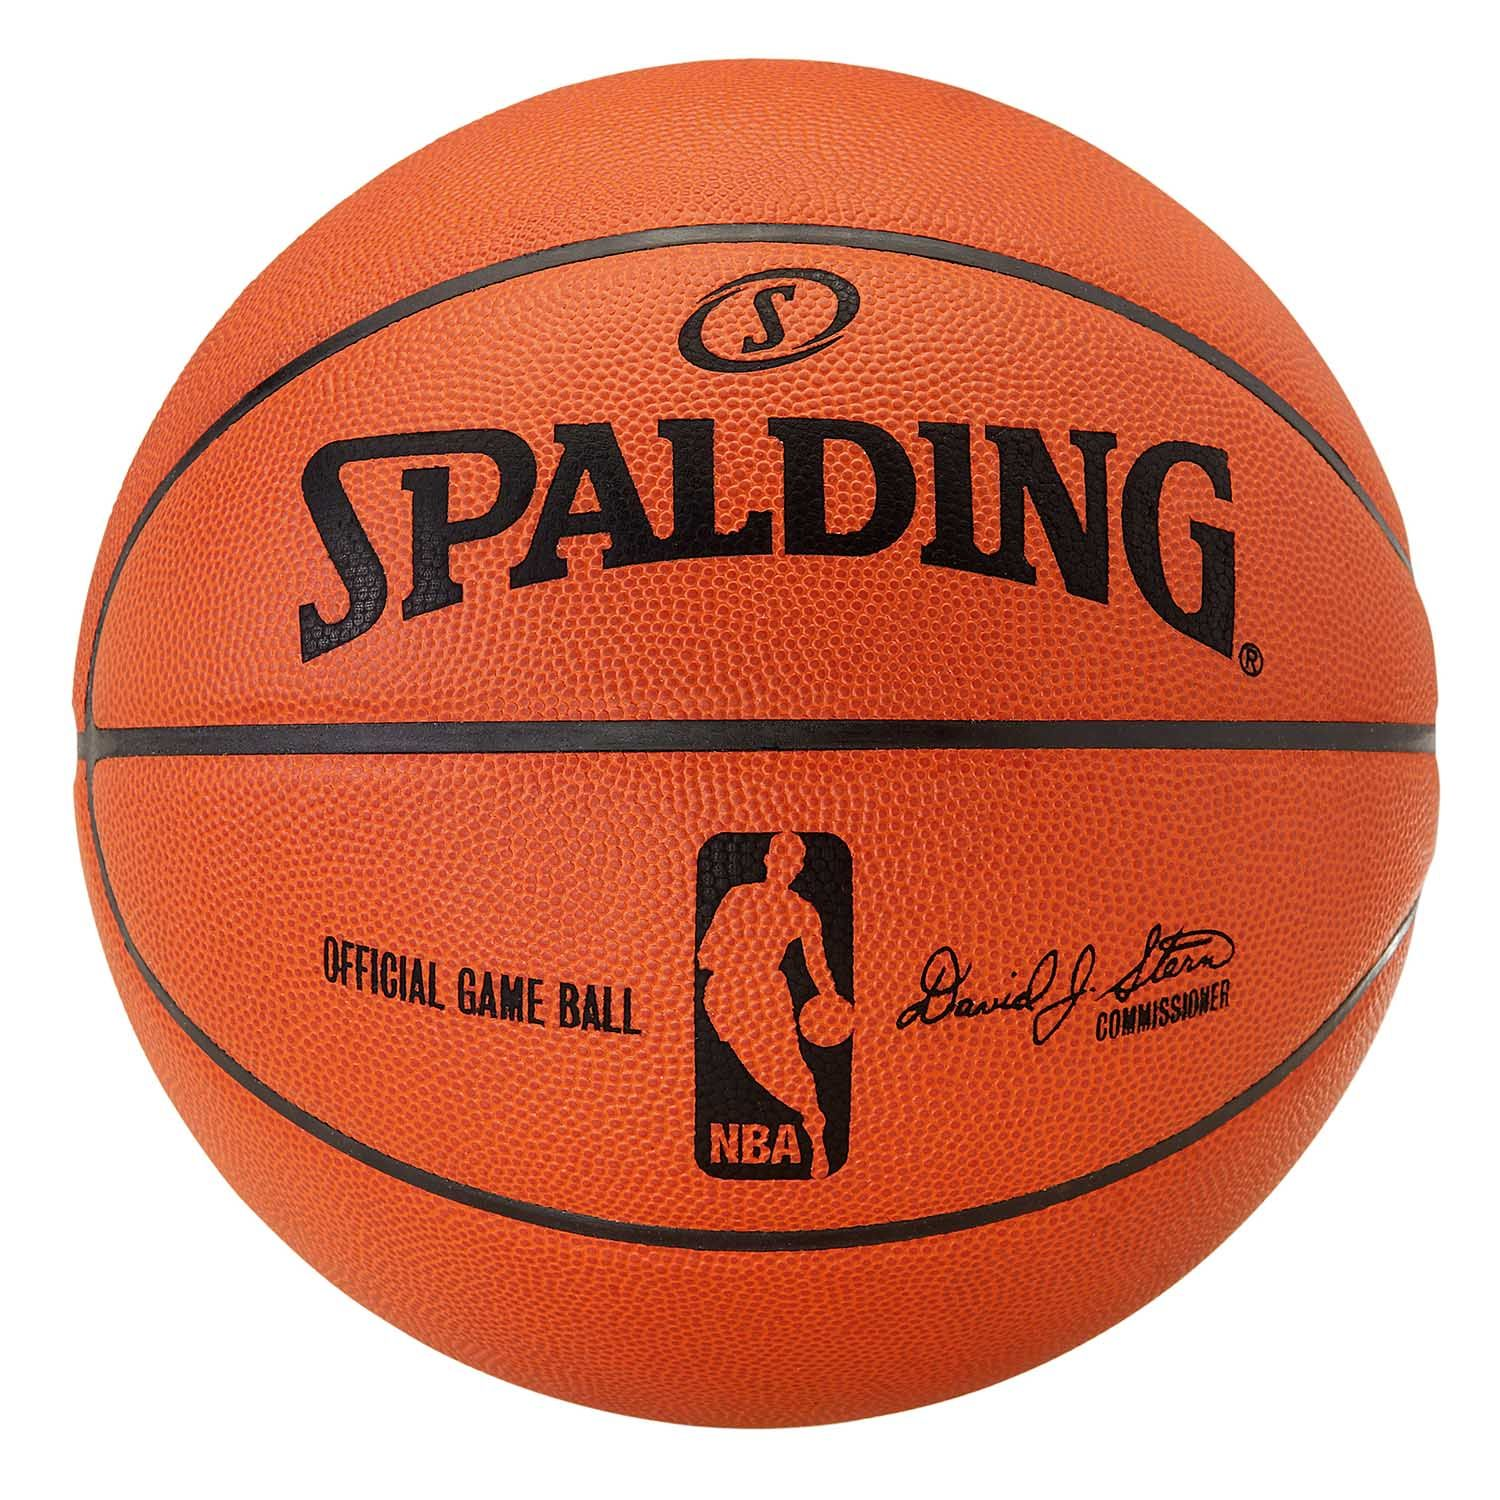 Spalding Game Ball Emblem Wallpaper